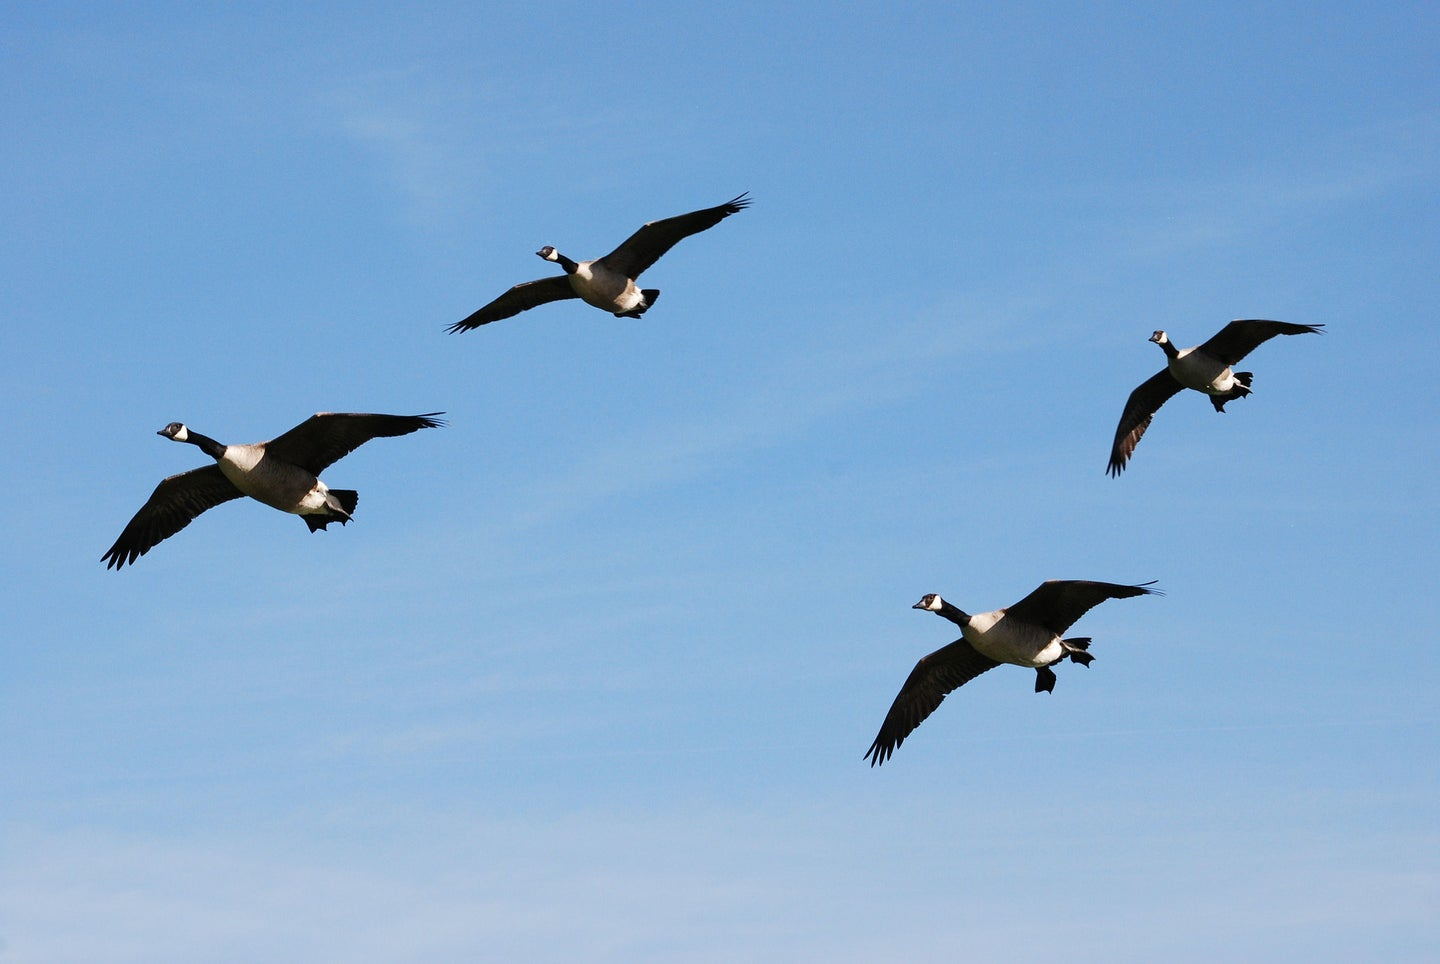 High flying Canada geese